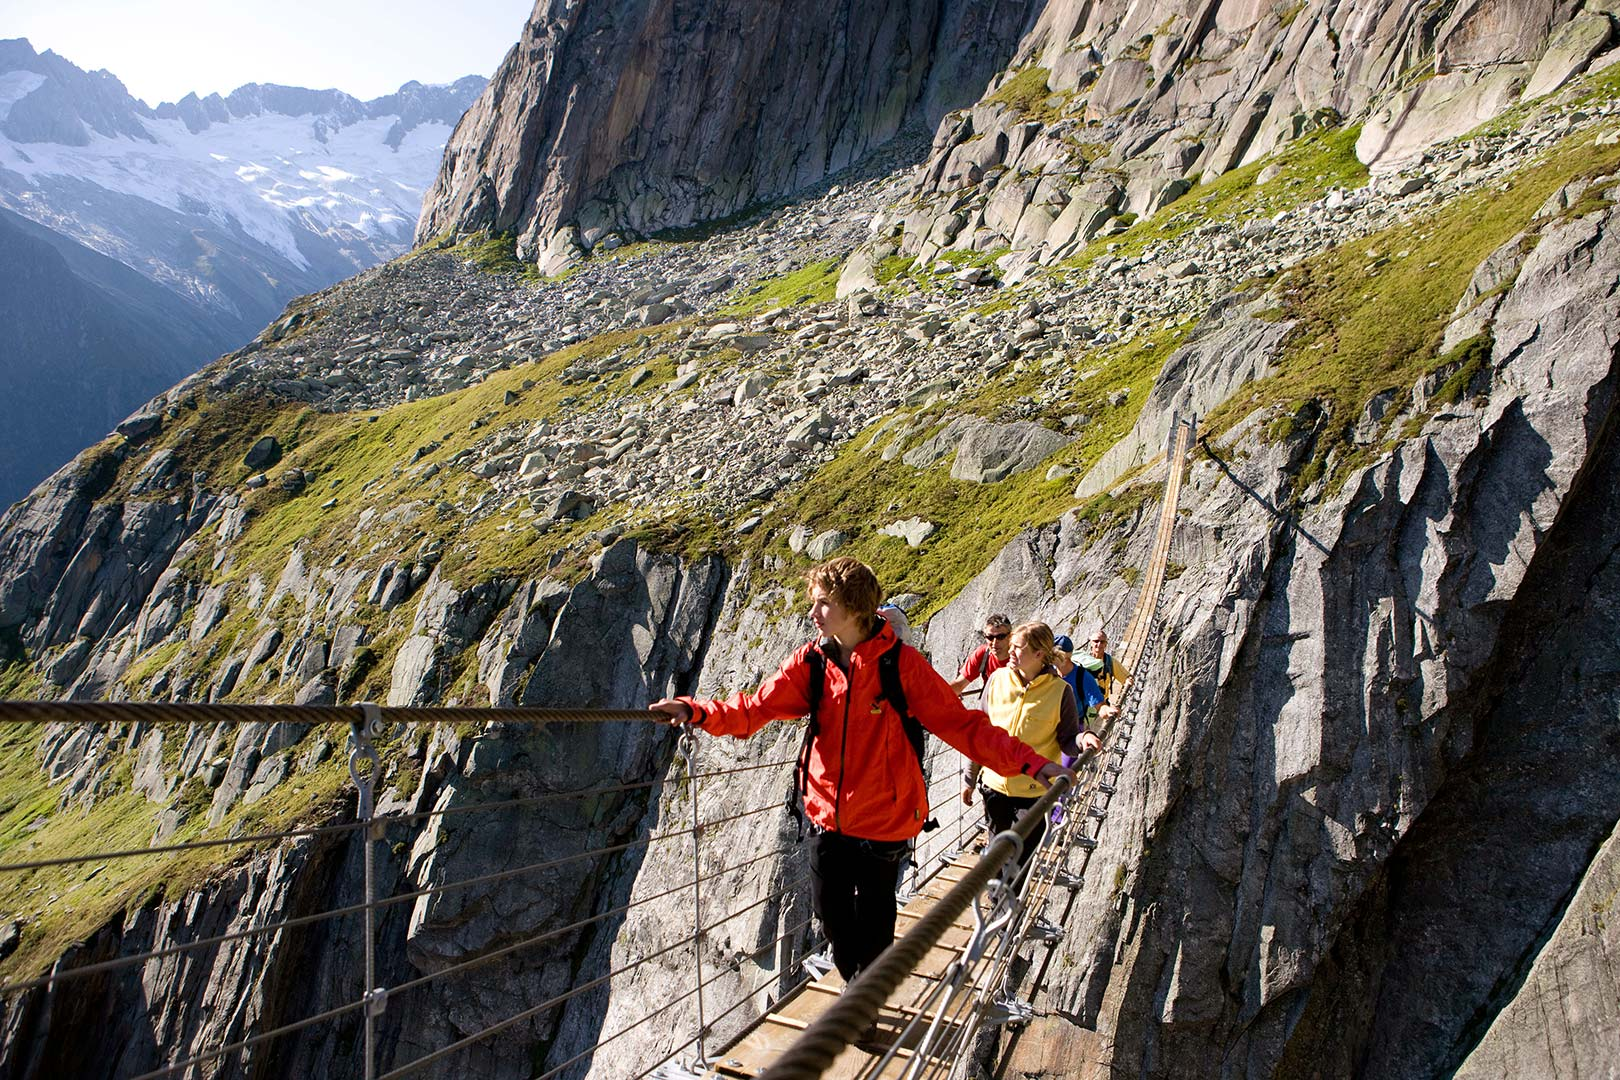 Picture of hikers crossing the Göscheneralp Salbitbrücke suspension bridge, Canton Uri, Switzerland